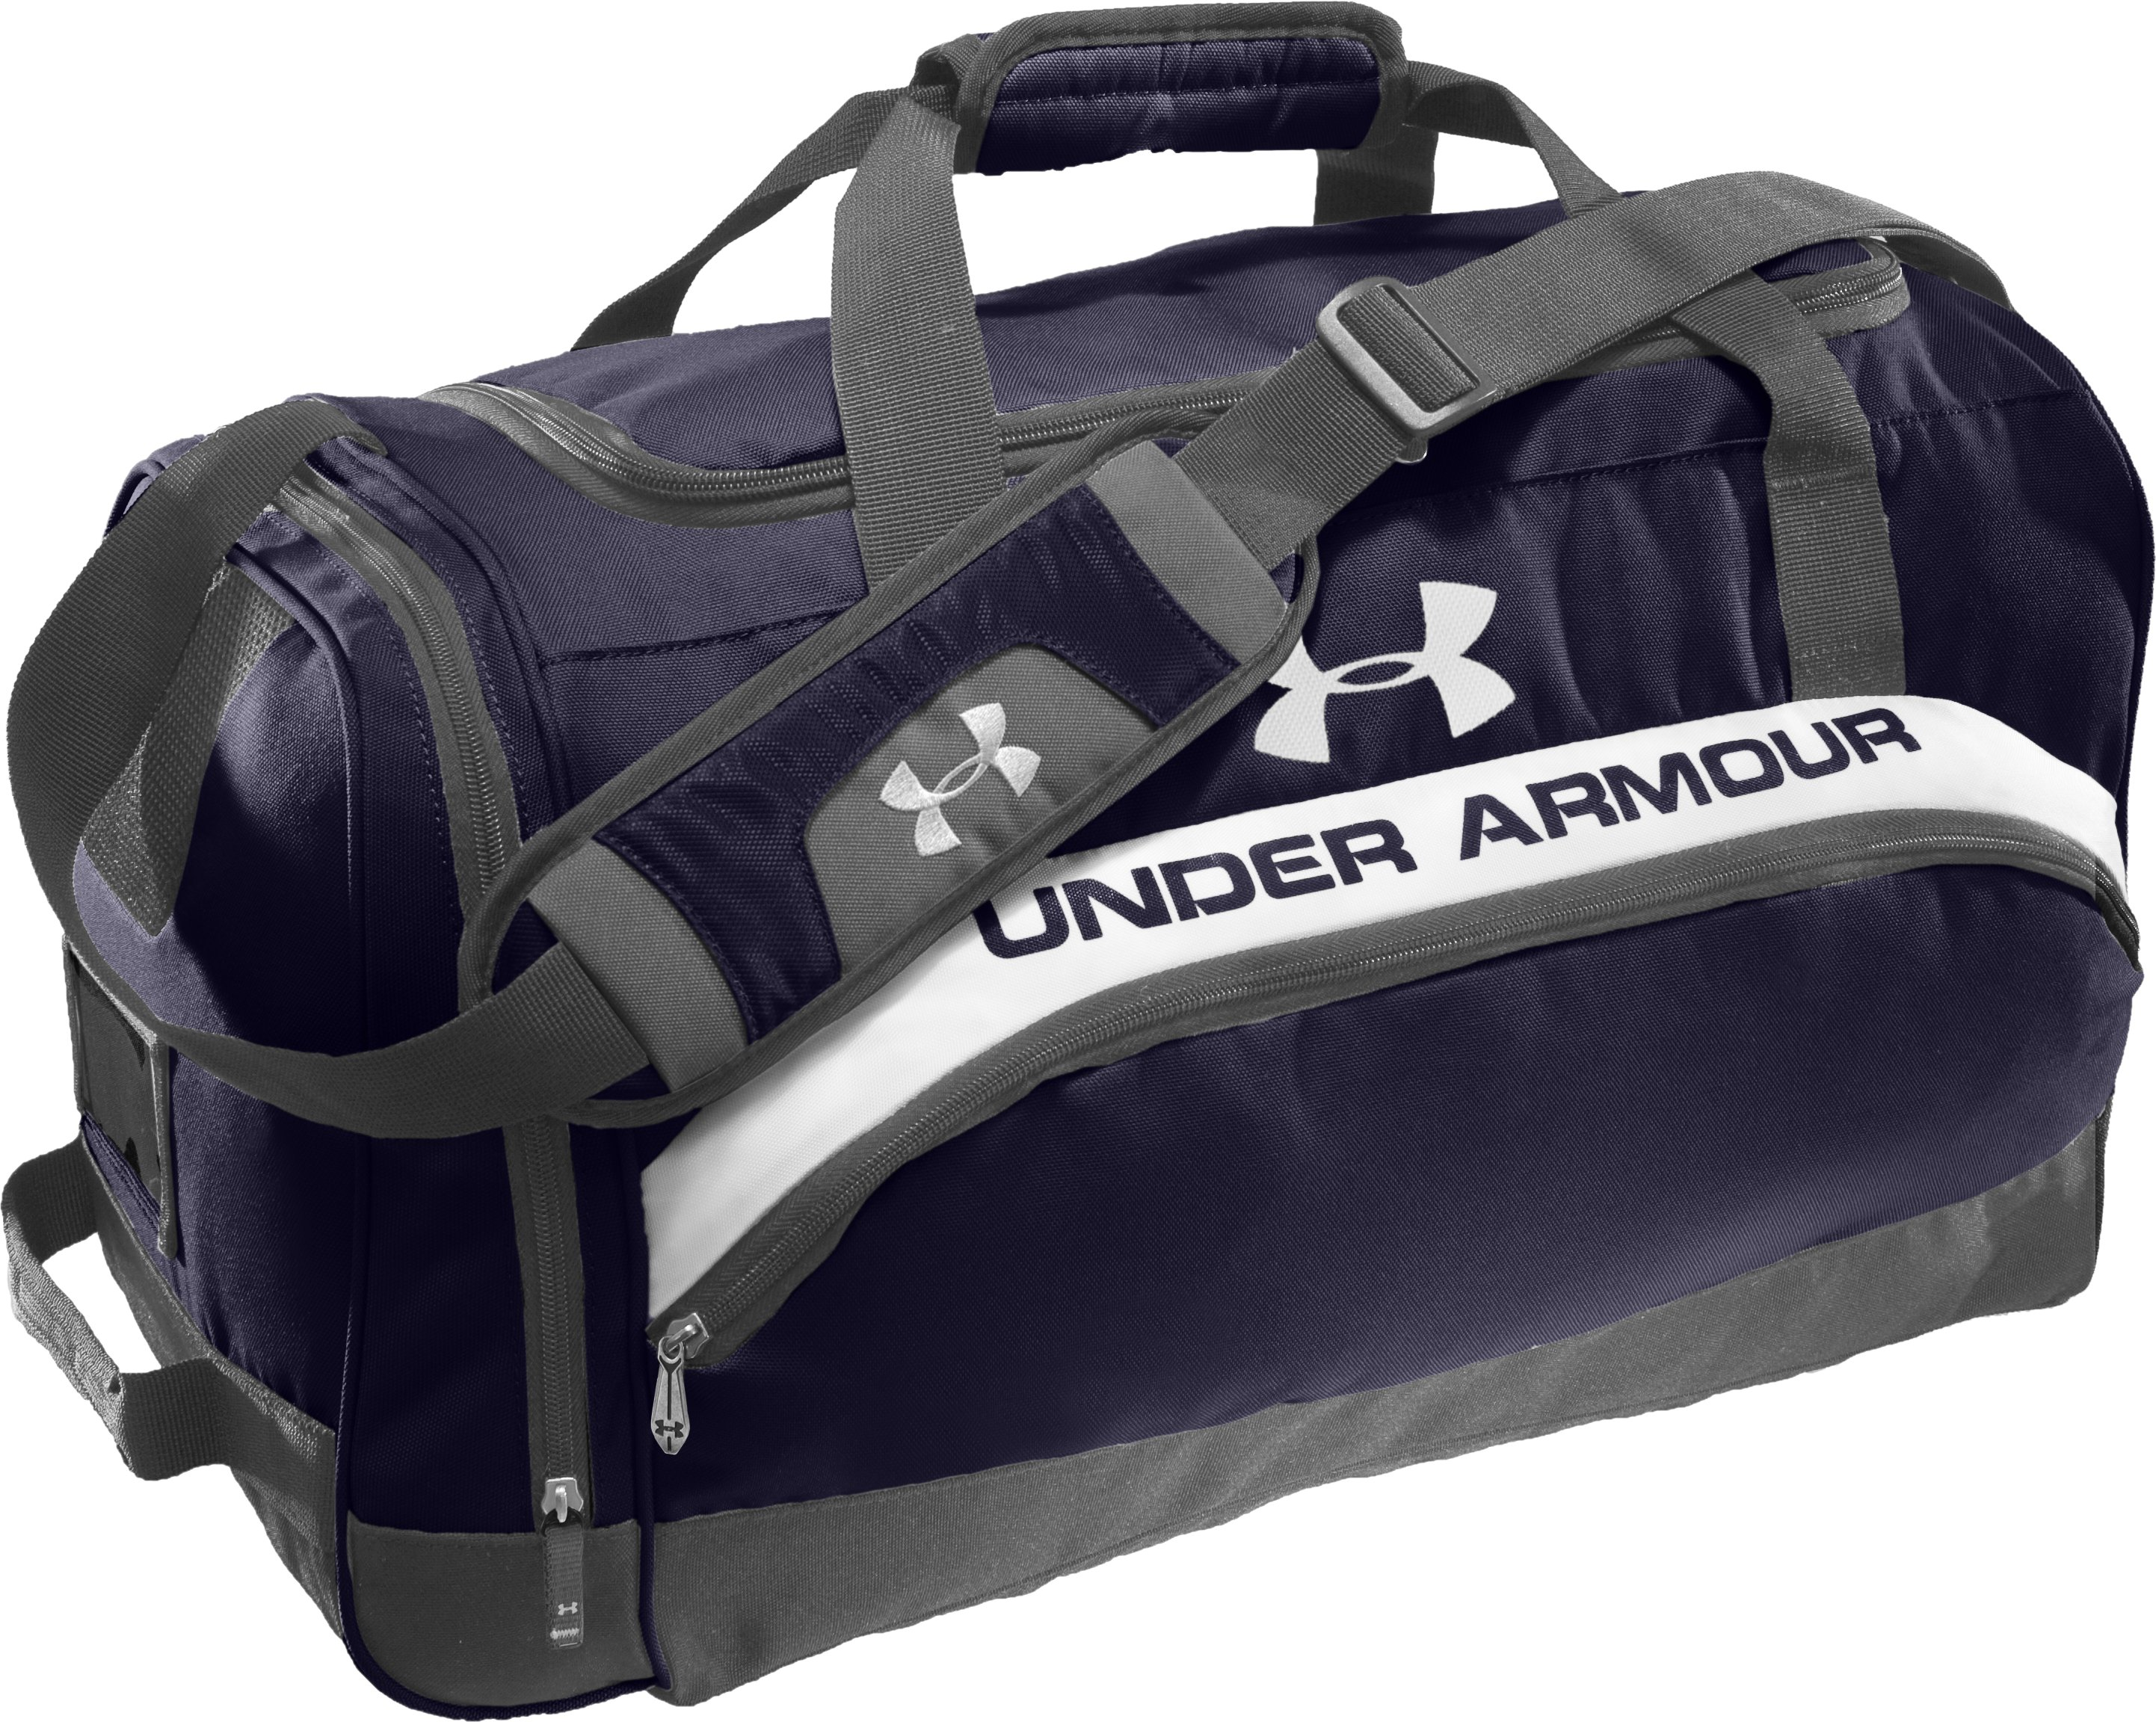 PTH® Victory Large Team Duffle Bag, Midnight Navy, undefined